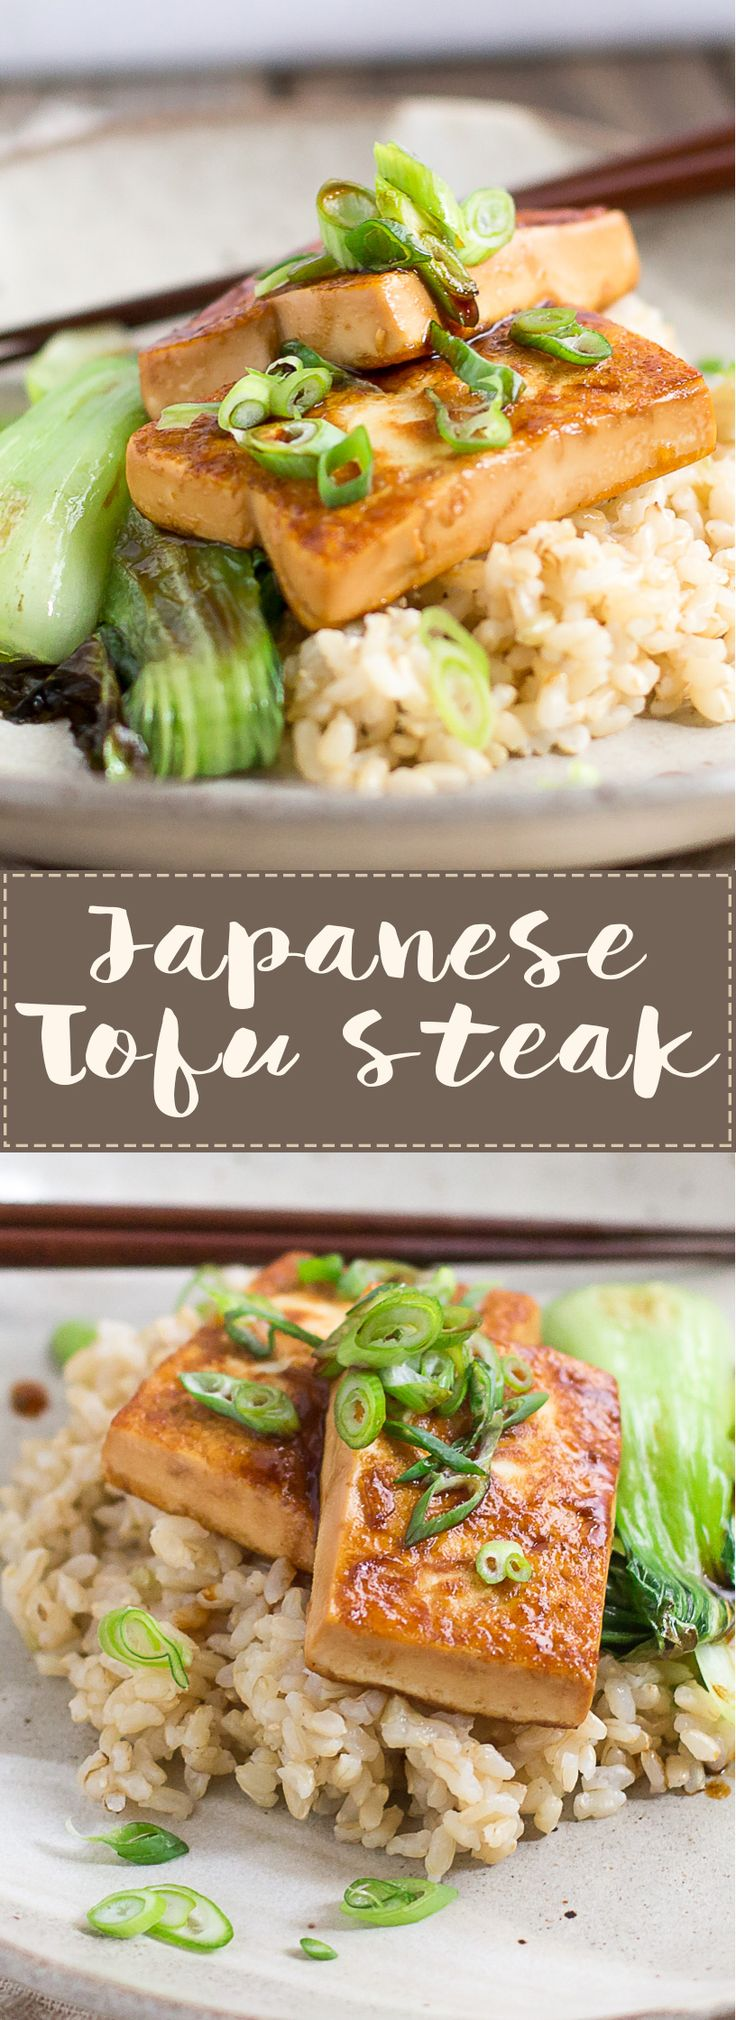 Japanese Tofu Steak- Protein Packed, Healthy, Easy, and Quick!